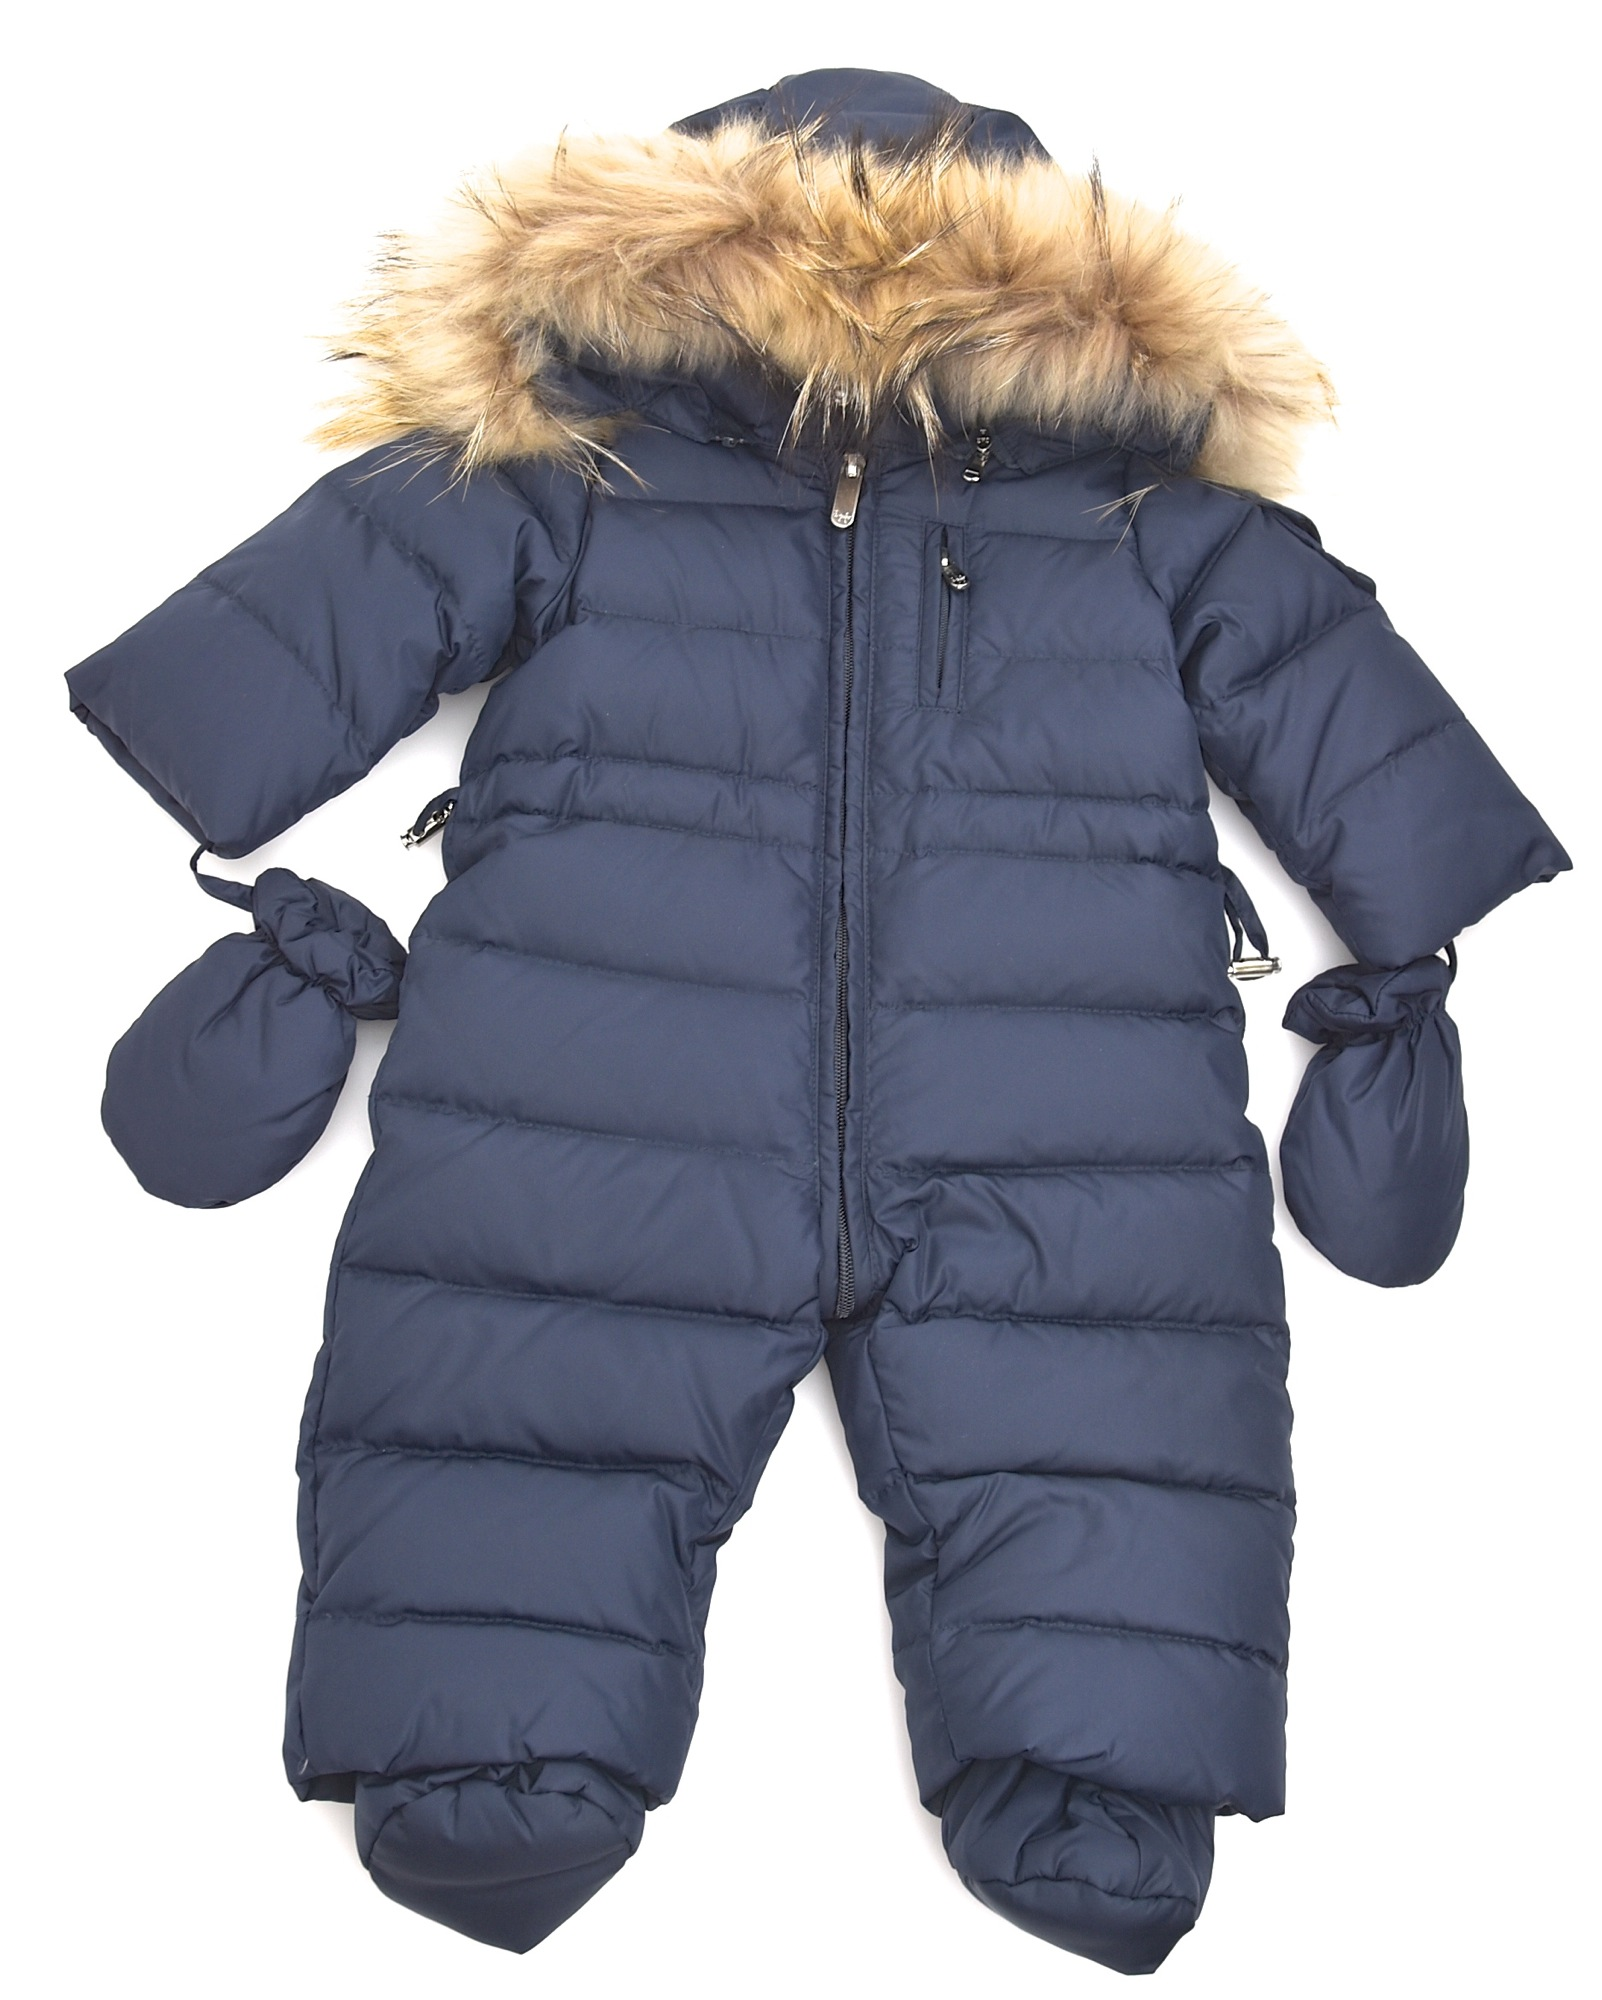 Details about IL GUFO BABY JUNIOR BOY GIRL FULL PADDED SUIT JACKET ART.  A11NO005EC100 497 25948224139be